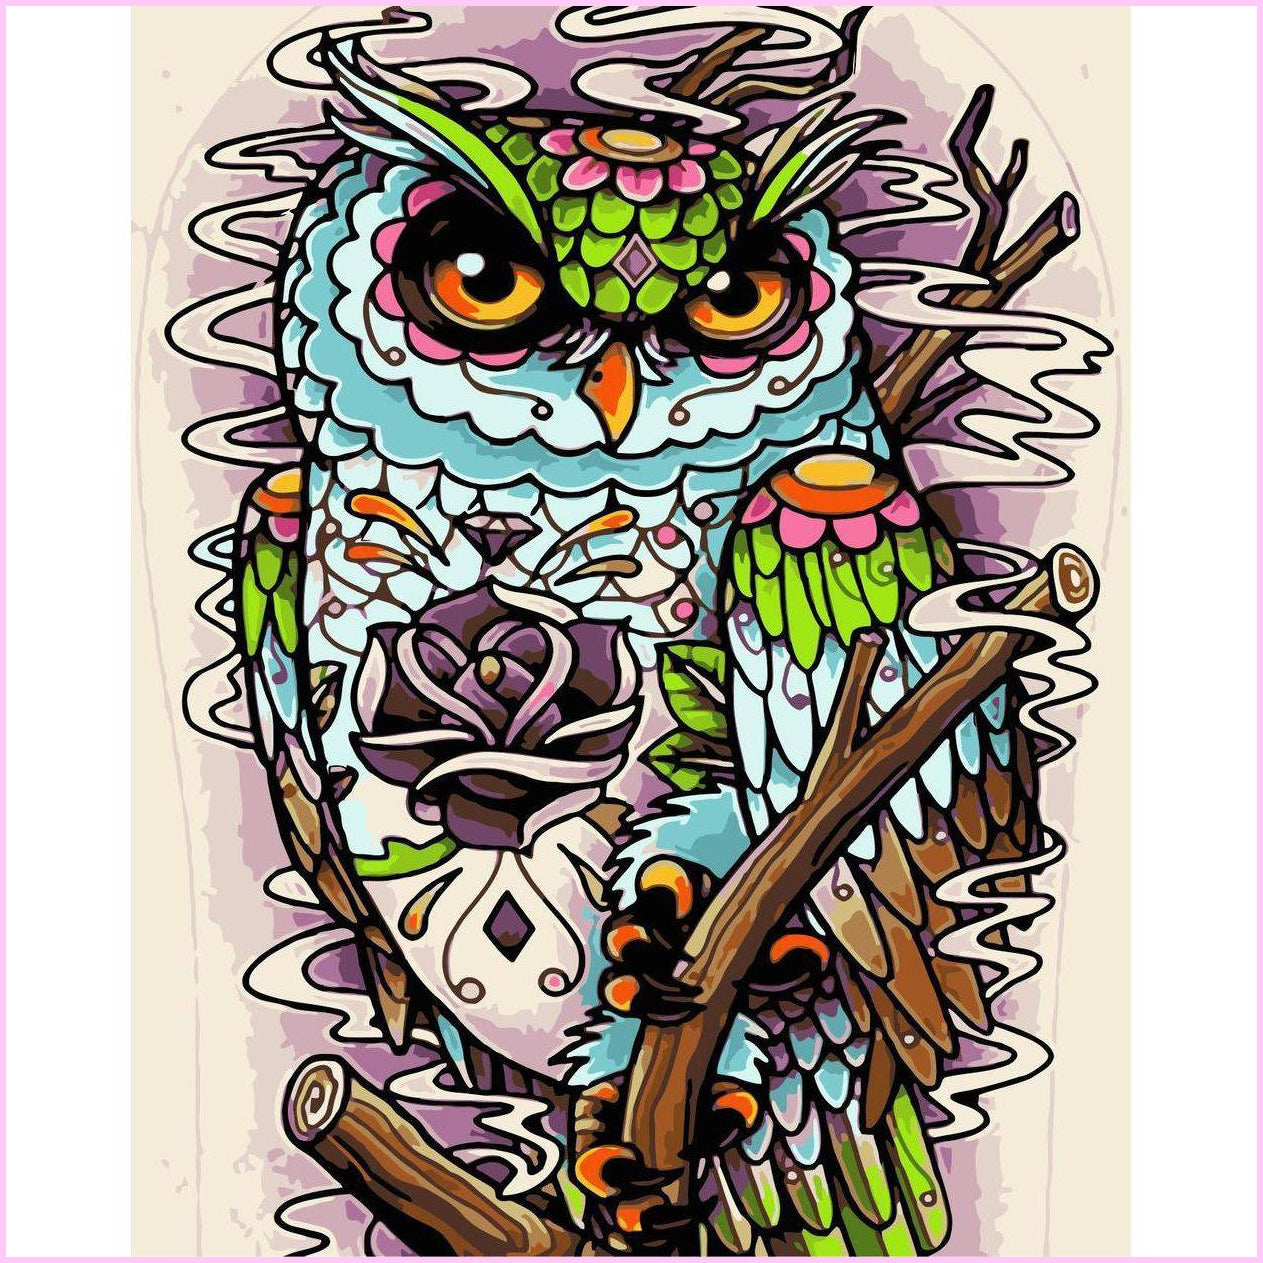 Groovy Owl-Diamond Painting Kit-30x40cm (12x16 in)-Square-Heartful Diamonds